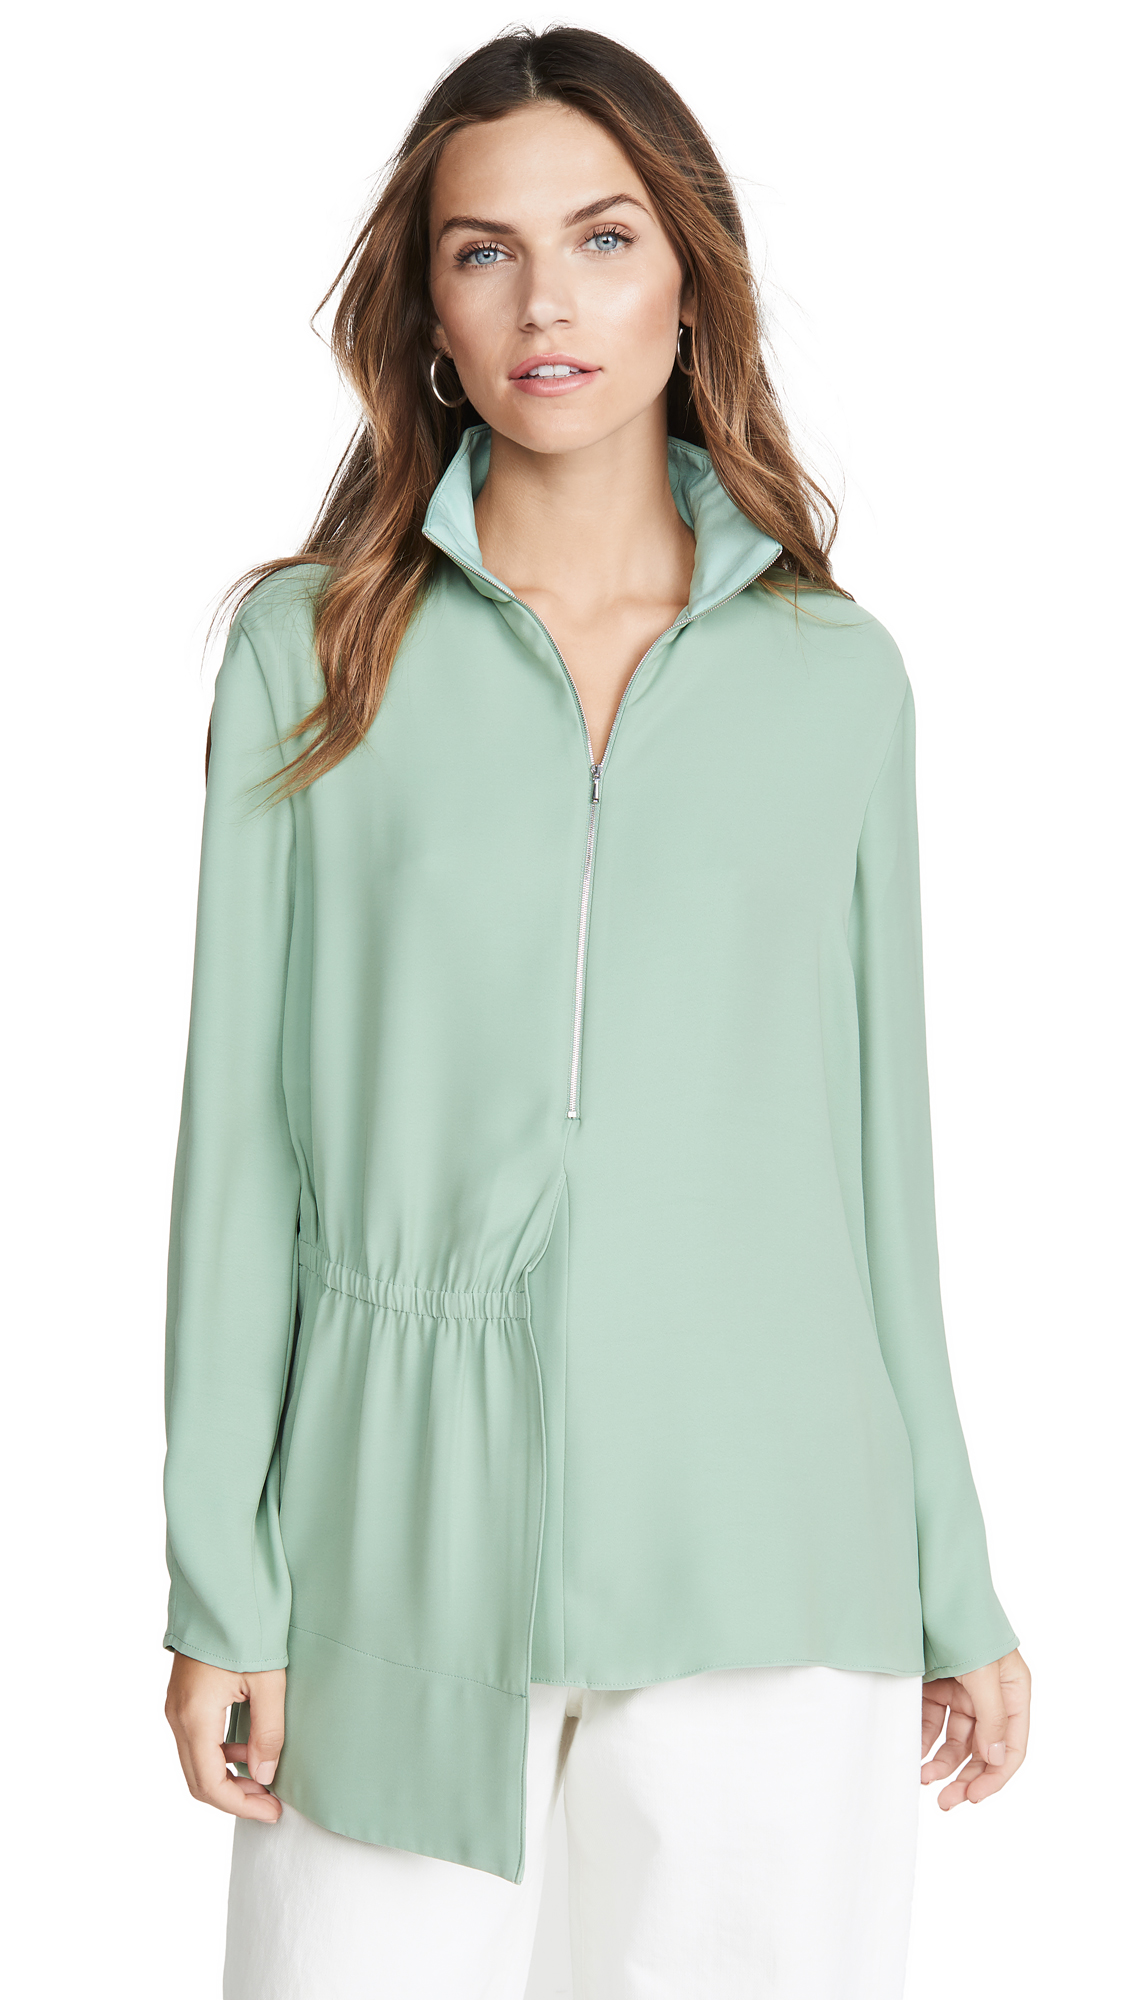 Tibi Zip Up Mock Neck Top – 70% Off Sale